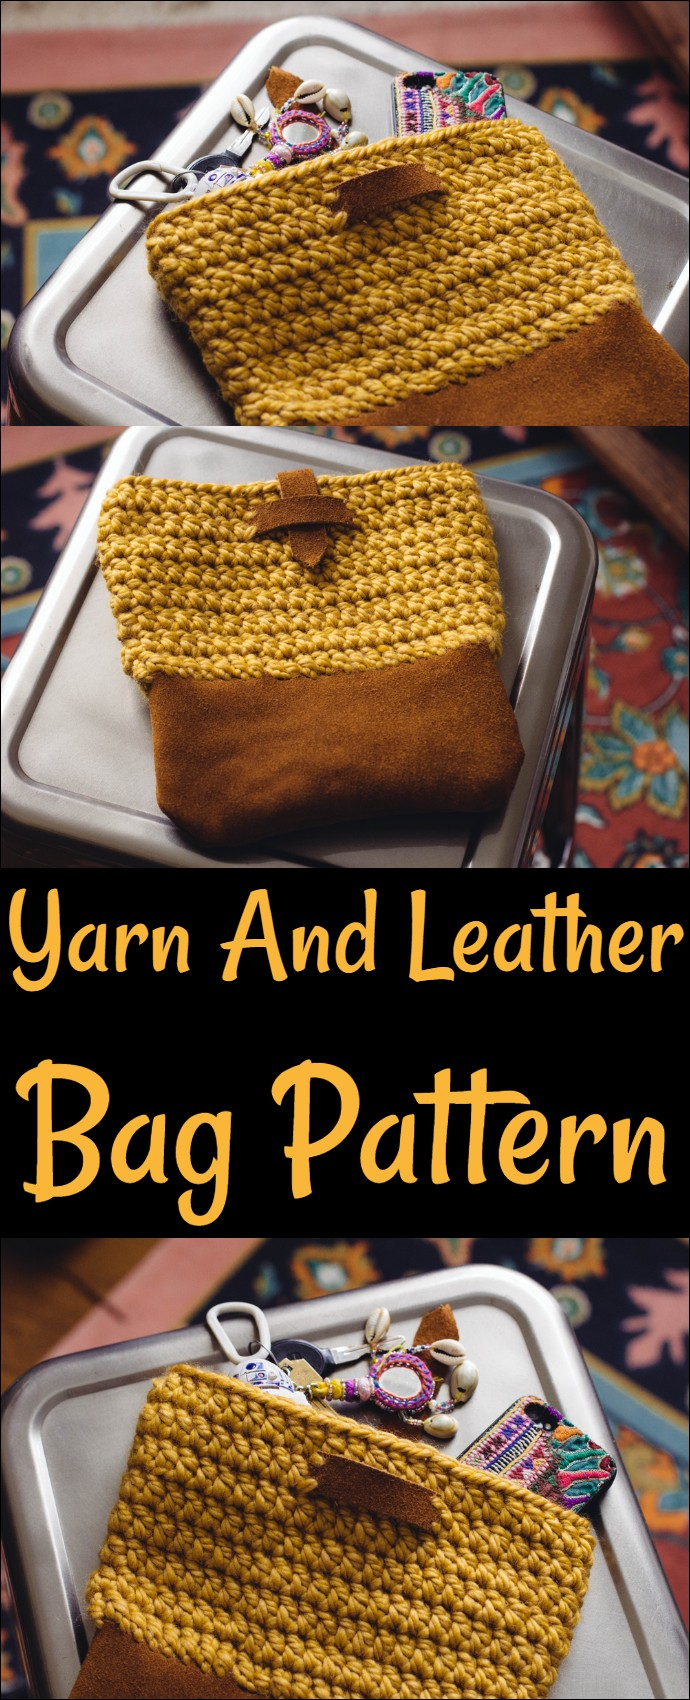 Yarn And Leather Bag Pattern